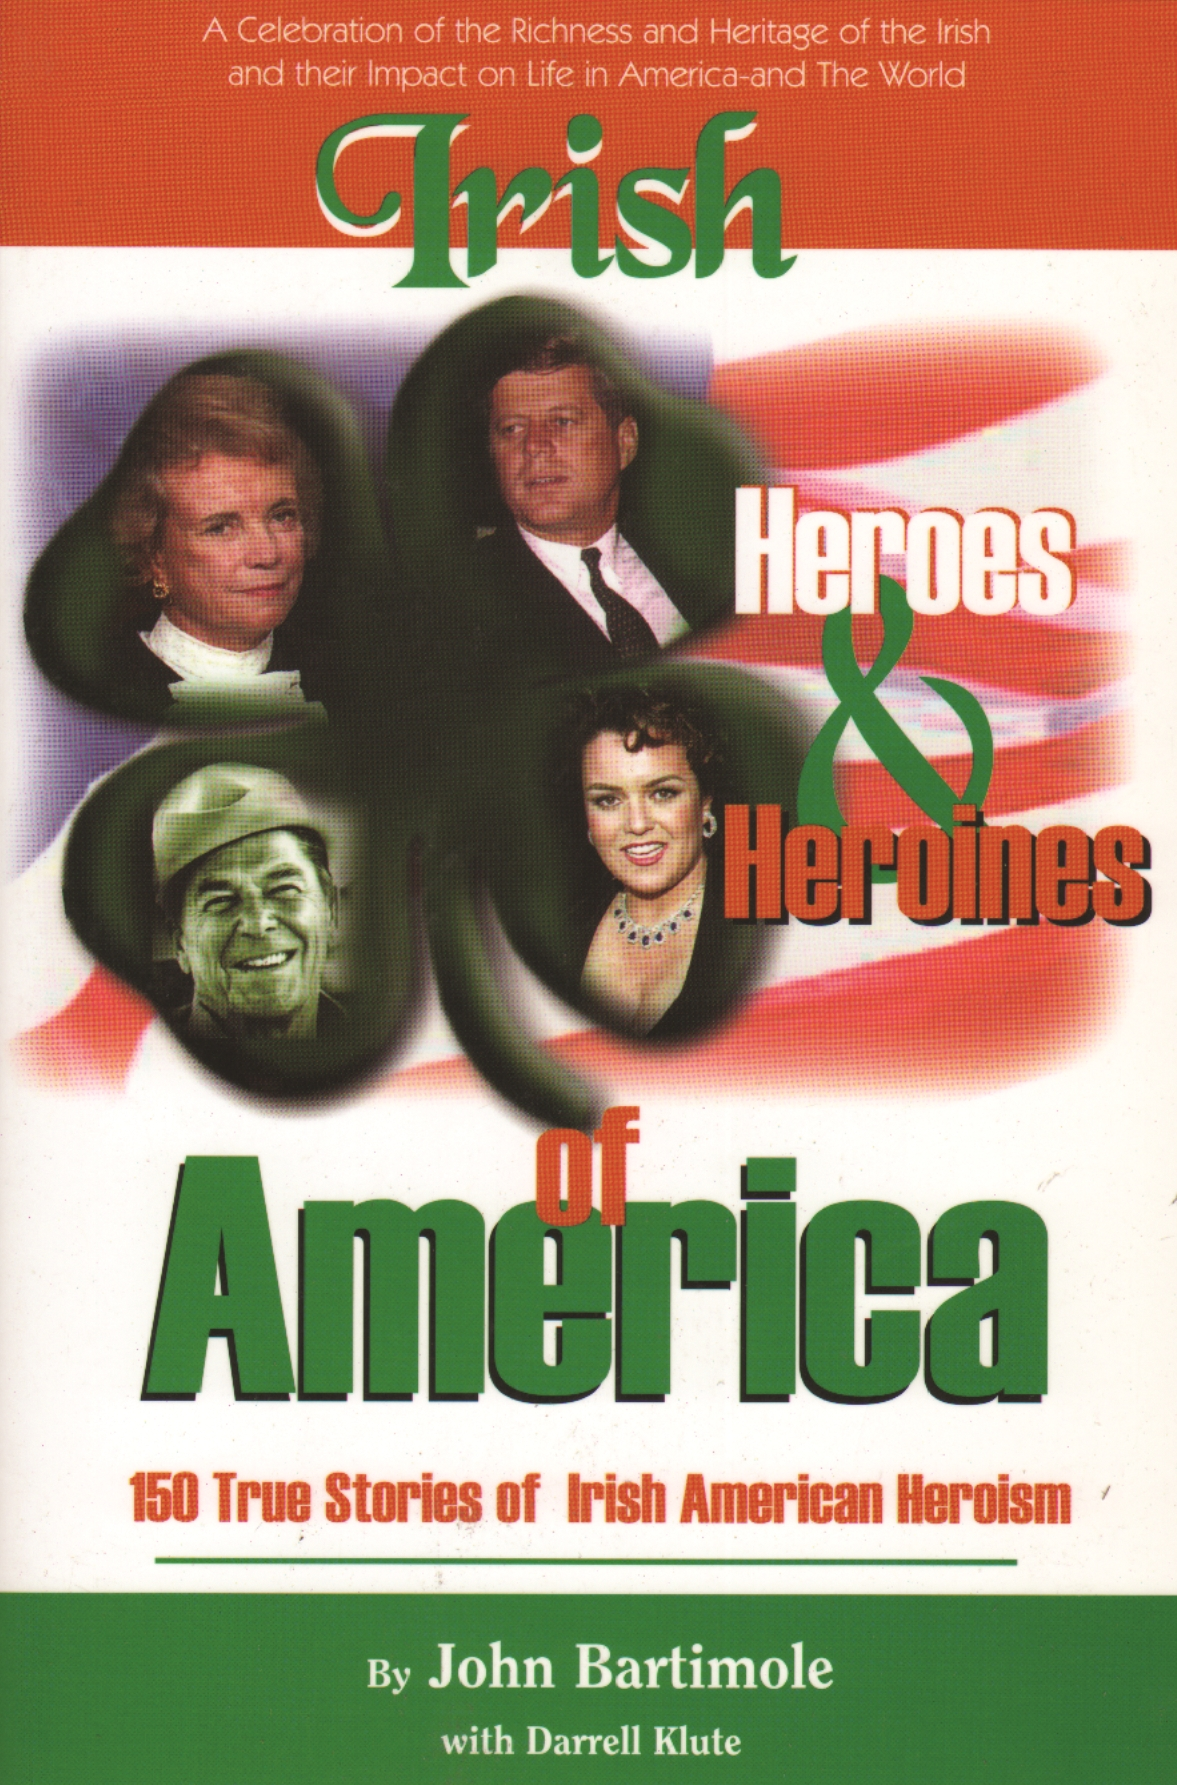 Irish Heroes and heroines of America